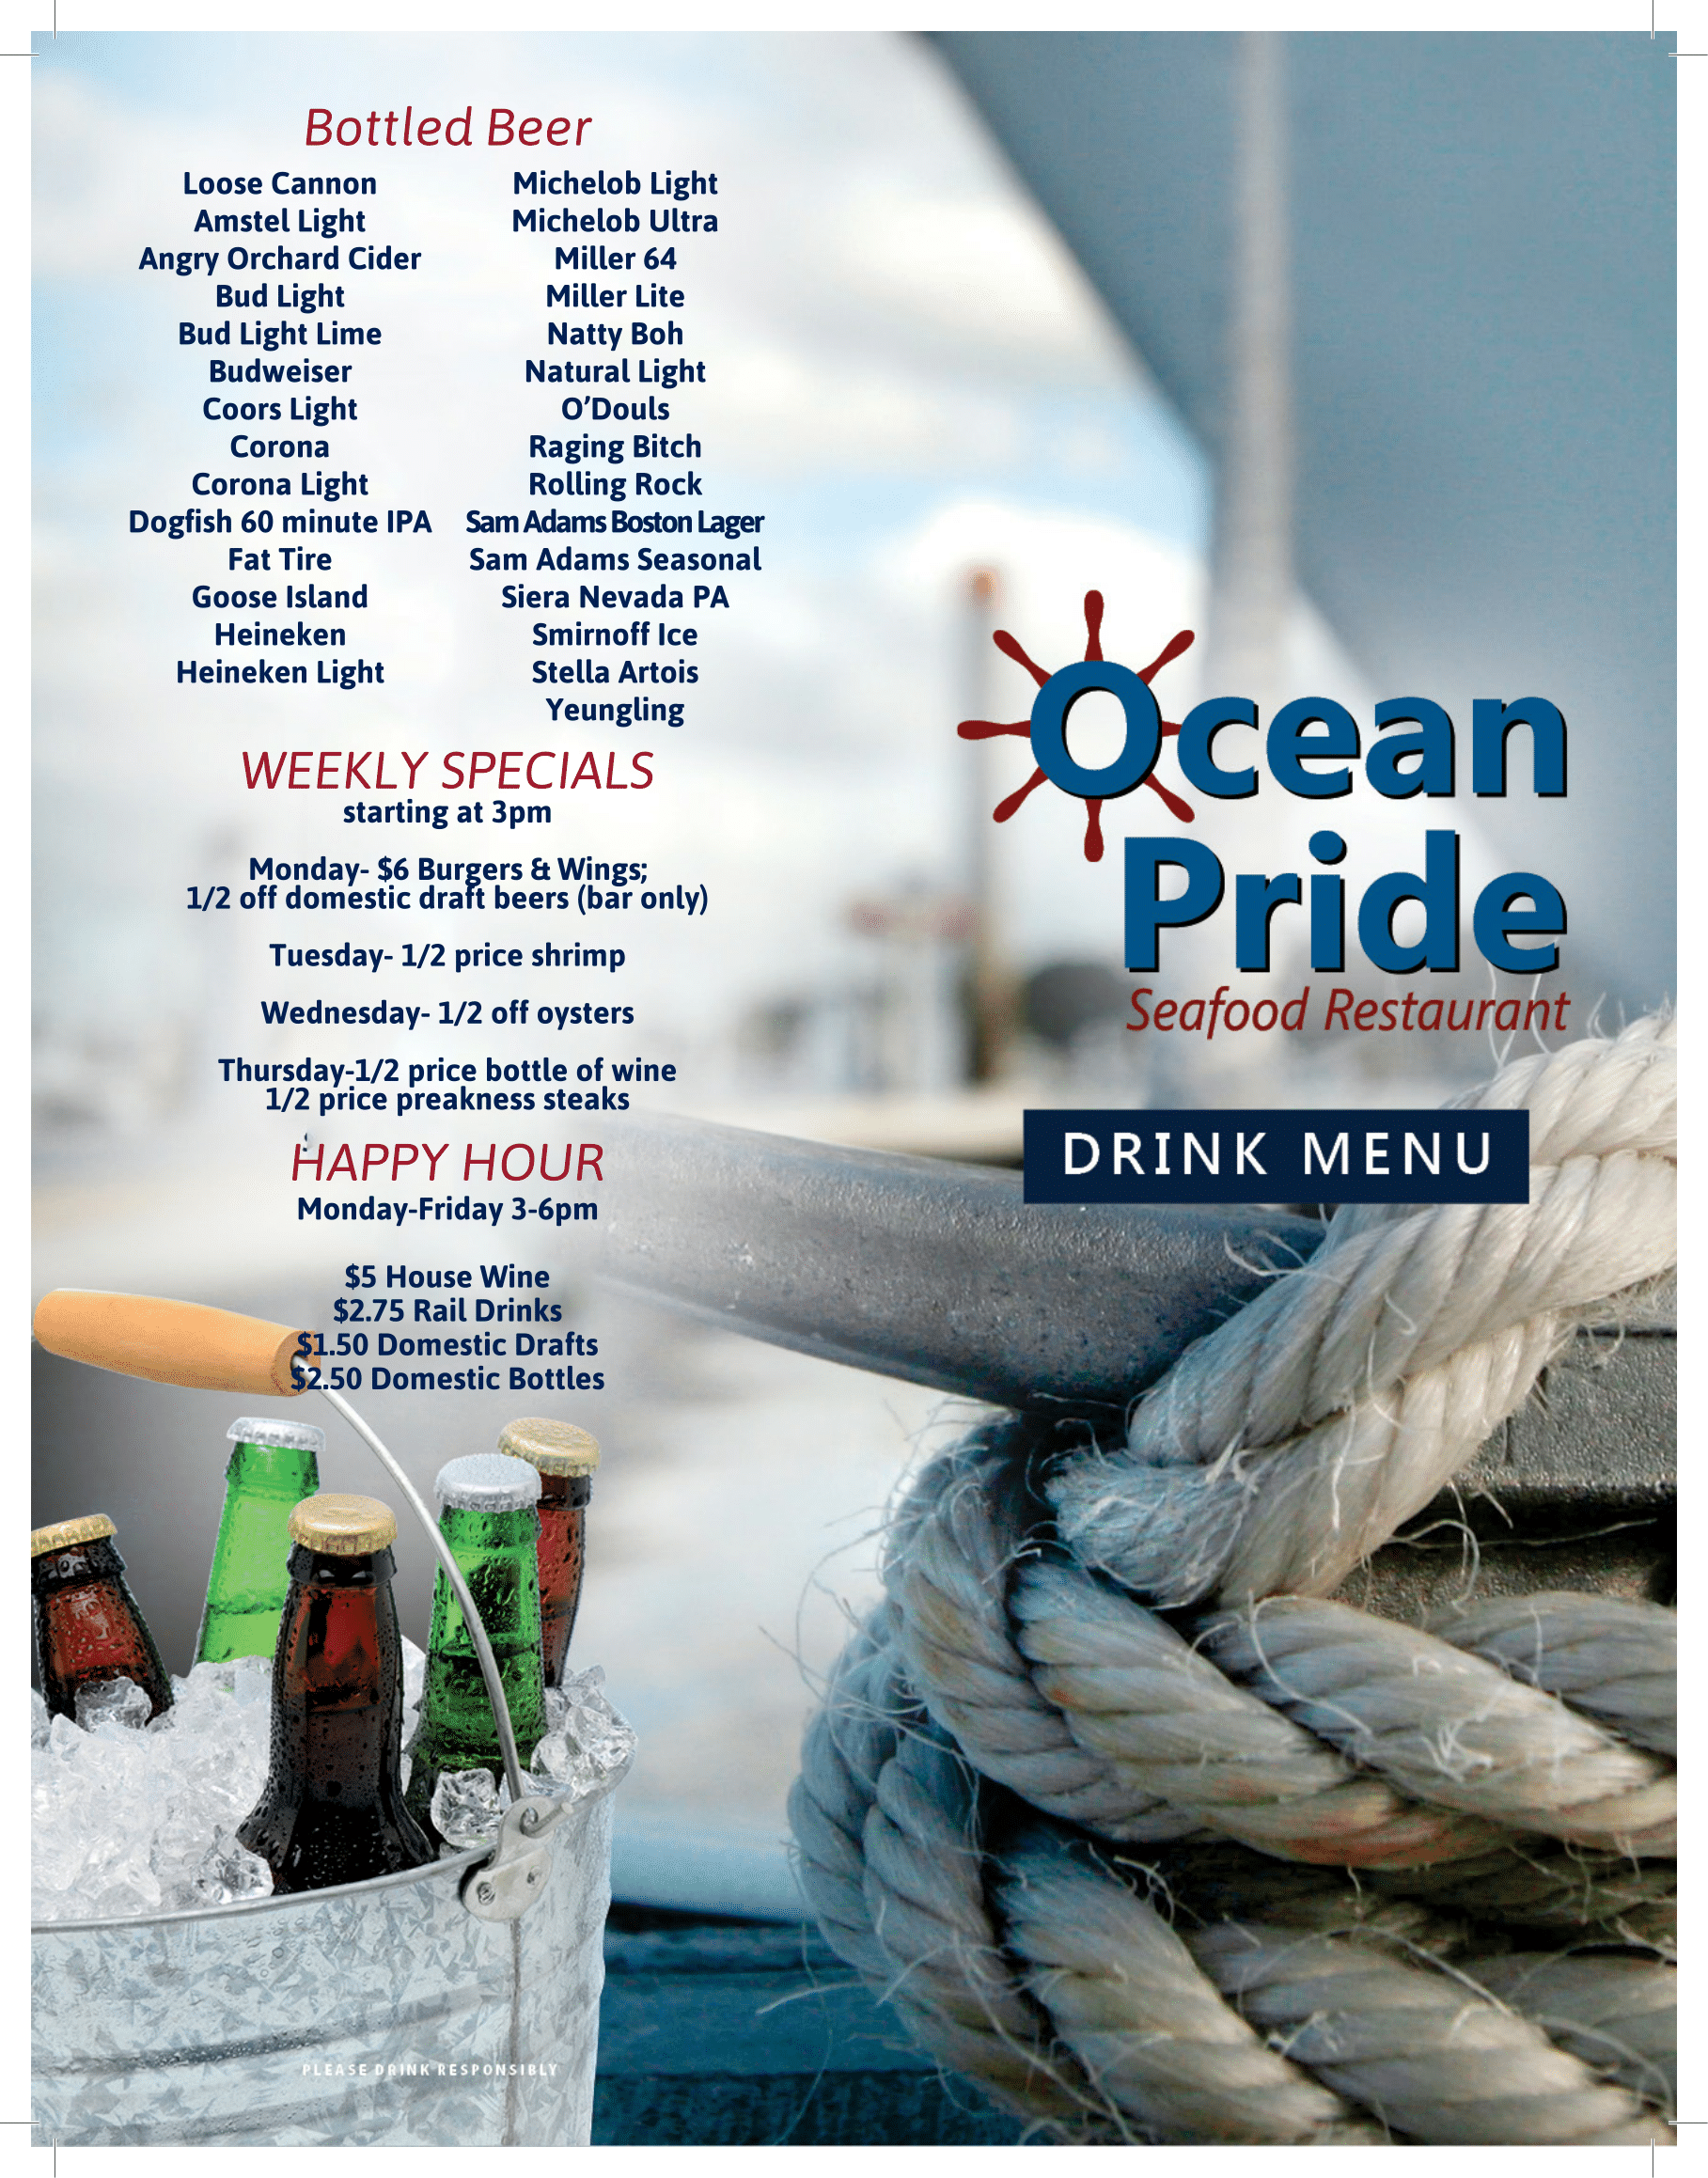 ocean pride seafood restaurant drink menu Bottled Beer Loose Cannon Amstel Light Angry Orchard Cider Bud Light Bud Light Lime Budweiser Coors Light Corona Corona Light Dogfish  60  minute  IPA Fat Tire Goose Island Heineken Heineken Light Michelob Light Michelob Ultra Miller 64 Miller Lite Natty Boh Natural Light O'Douls Raging Bitch Rolling Rock Sam Adams Boston Lager Sam Adams Seasonal Siera Nevada PA Smirnoff Ice Stella Artois Yeungling WEEKLY SPECIALS starting at 3pm Monday- $6 Burgers & Wings; 1/2 off domestic draft beers (bar only) Tuesday- 1/2 price shrimp Wednesday- 1/2 off oysters Thursday-1/2 price bottle of wine 1/2 price preakness steaks HAPPY HOUR Monday-Friday 3-6pm $5 House Wine $2.75 Rail Drinks $1.50 Domestic Drafts $2.50 Domestic Bottles